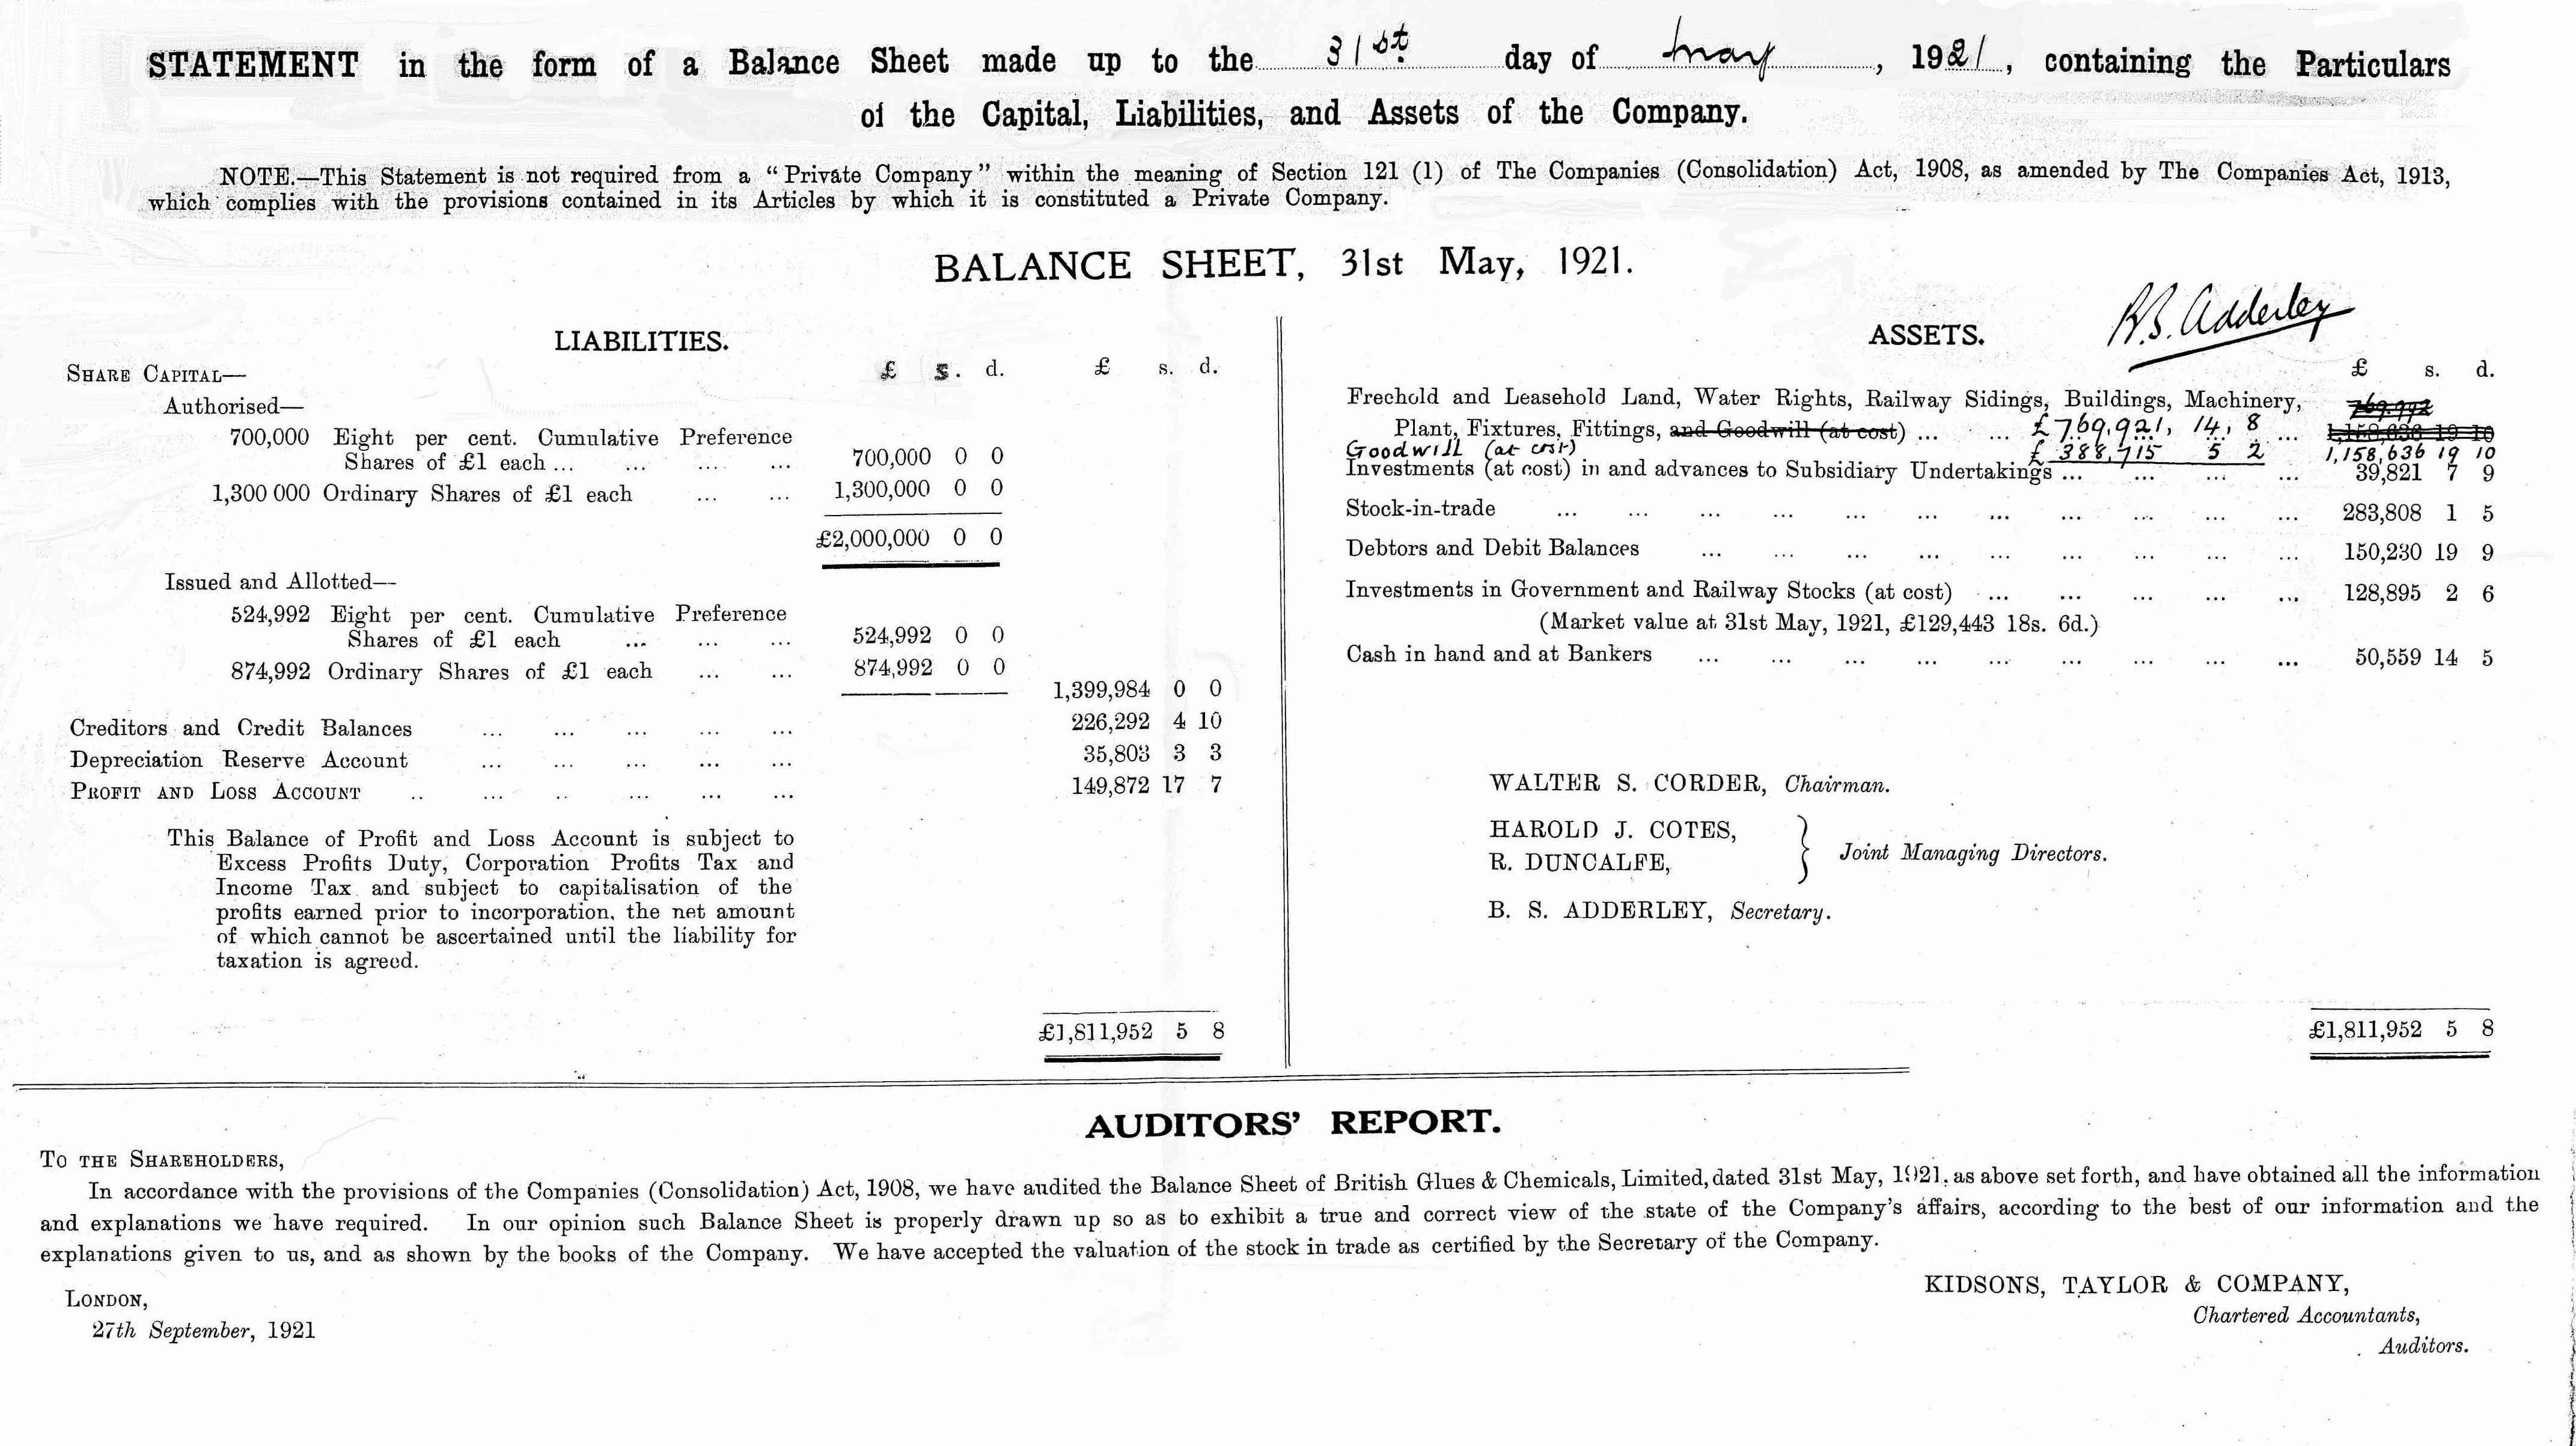 Quibells Buried In Cemetery Located In NewarkOnTrent - Rent invoice template word pioneer woman mercantile online store